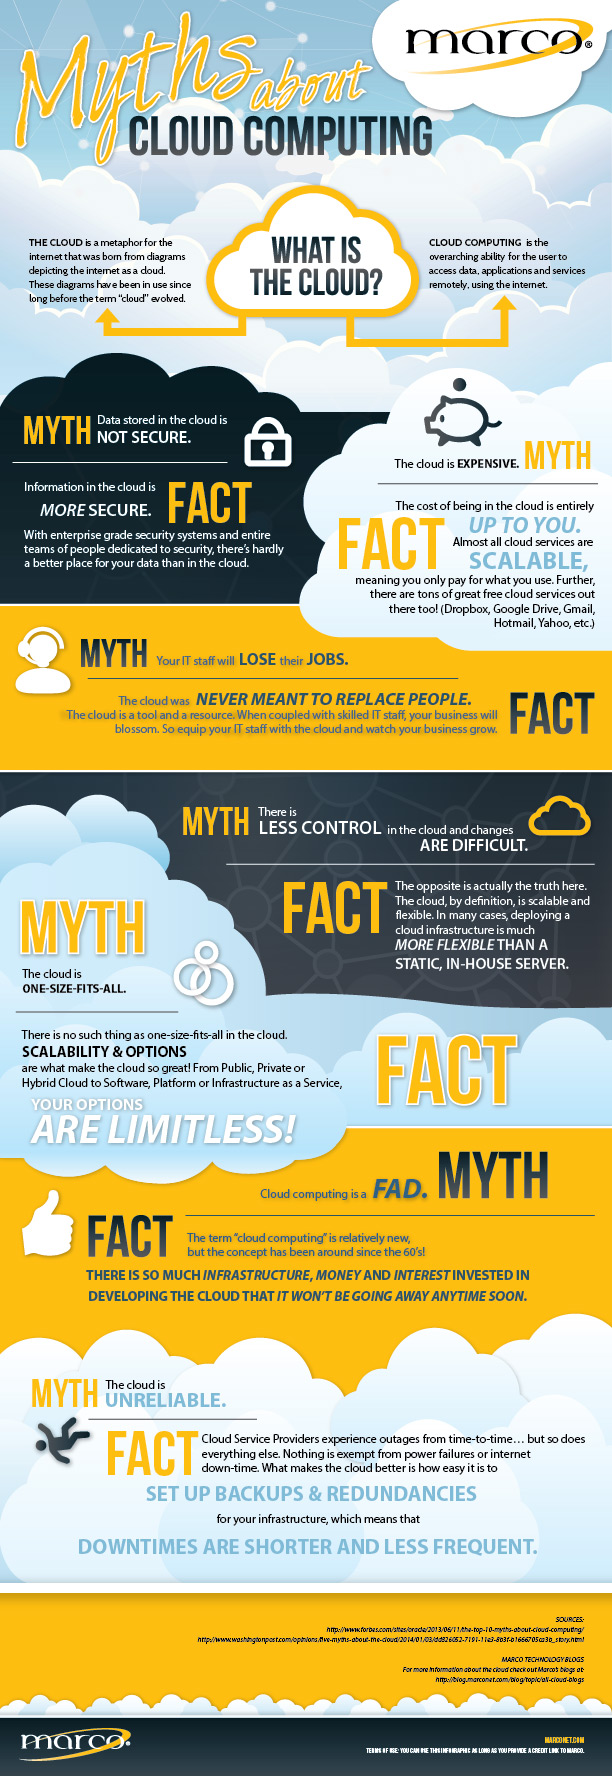 Marco_Cloud-Infographic-2_Final-WEB